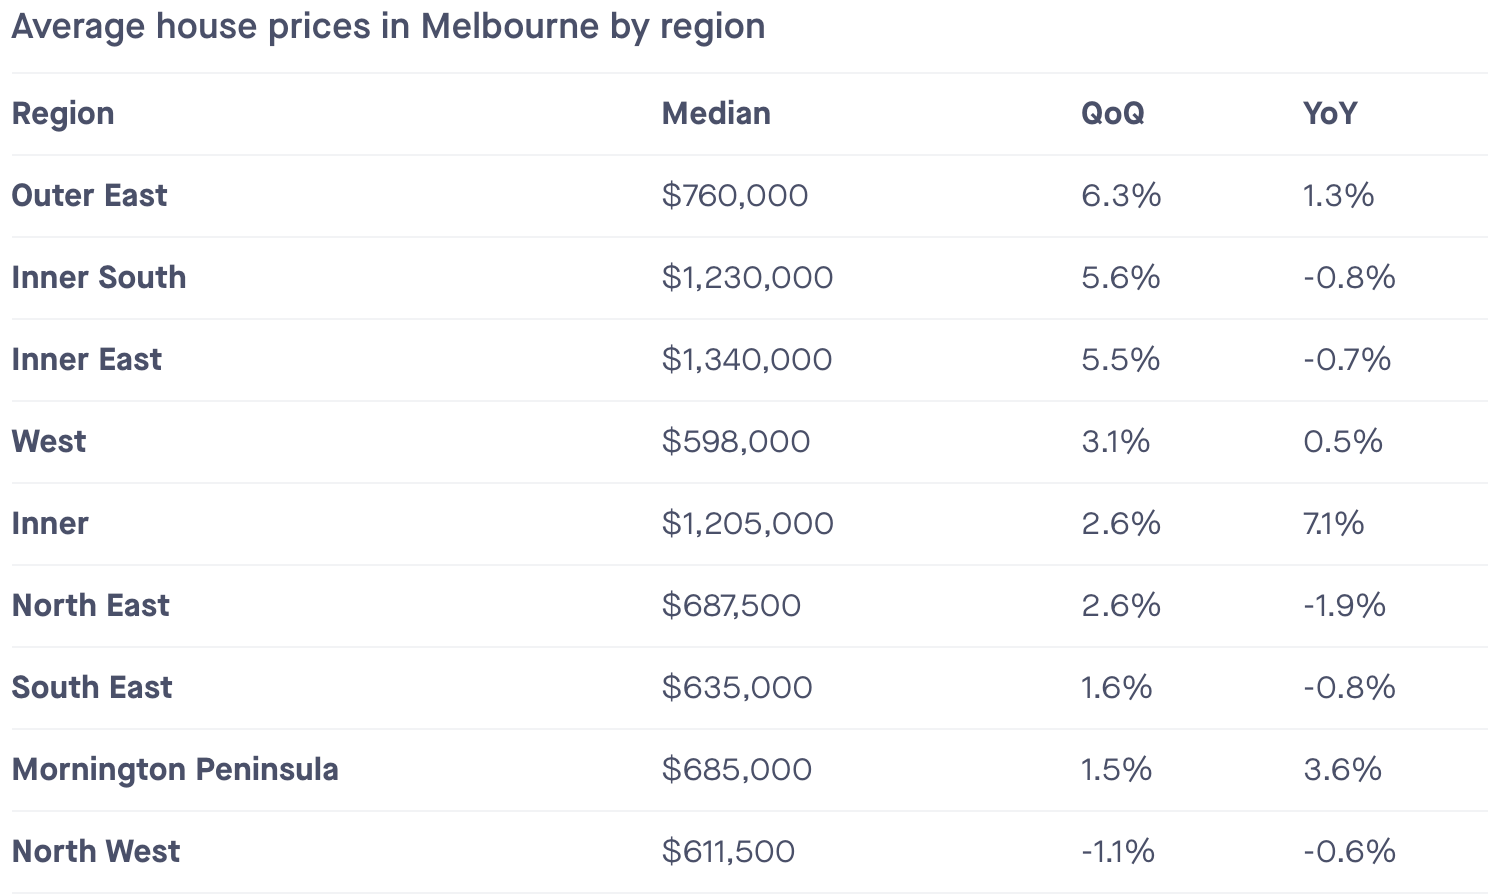 Average House Prices in Melbourne by Region